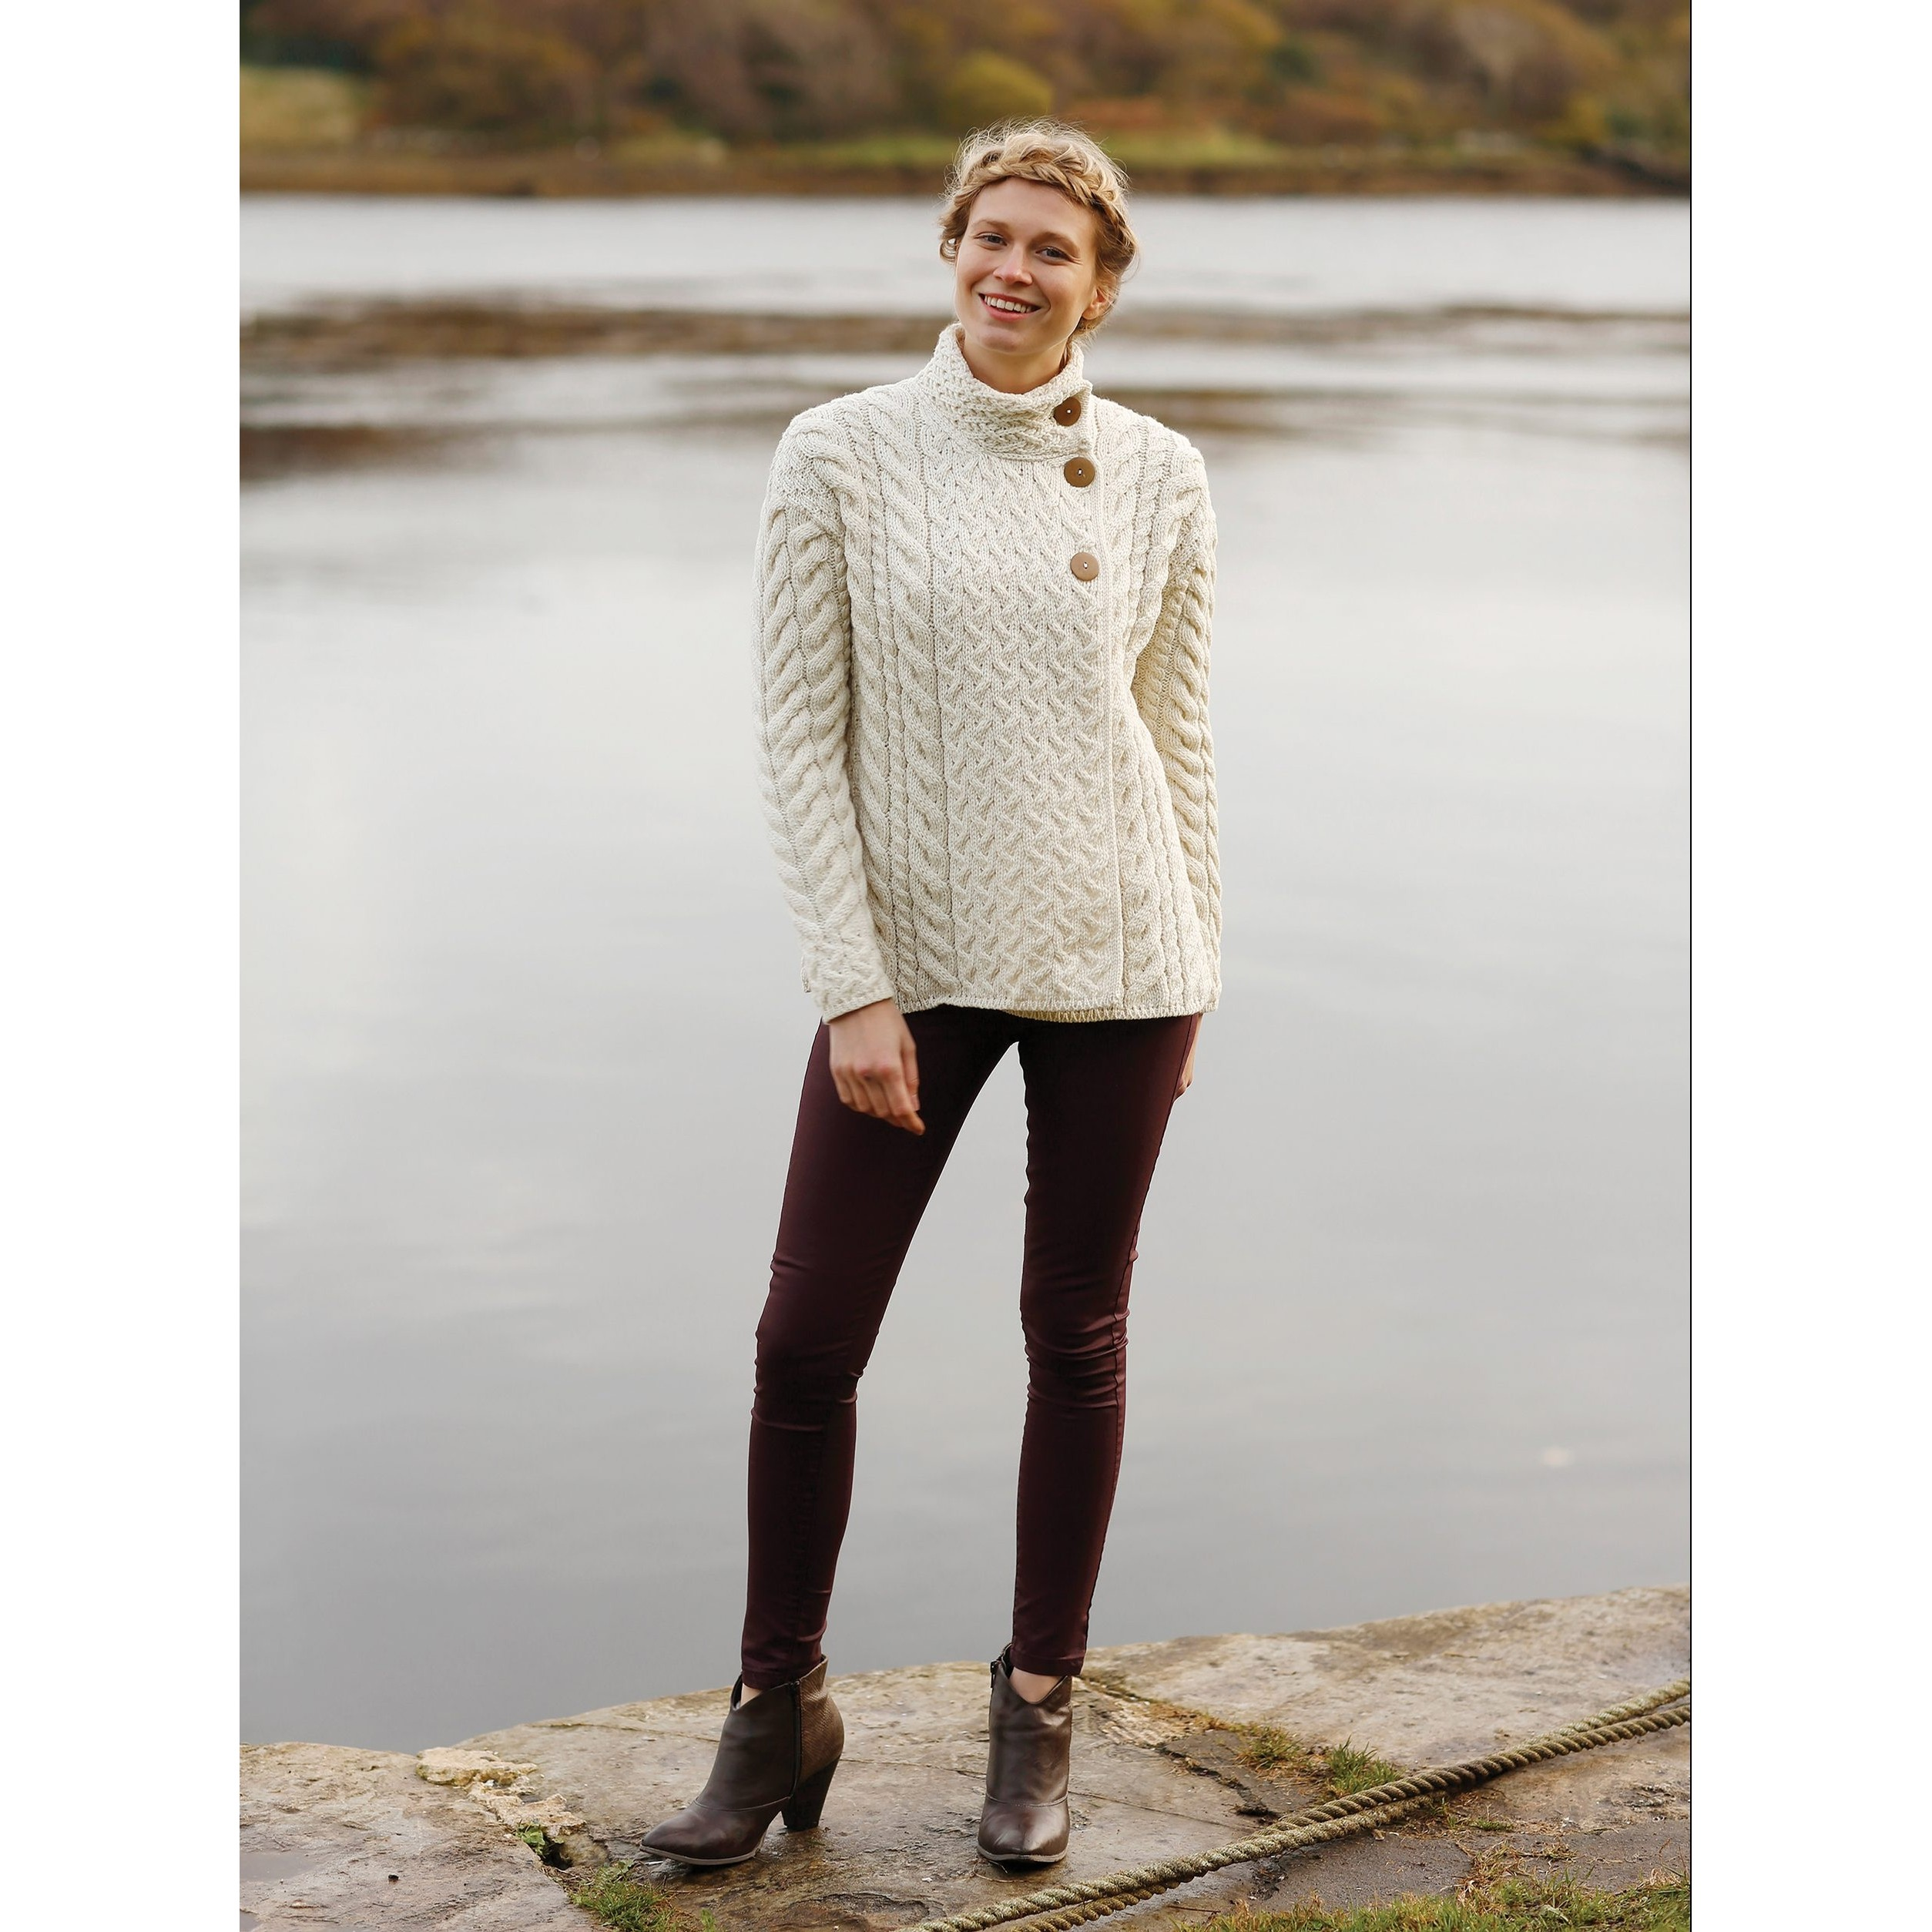 Carraig Donn Knitwear Supersoft White Irish Cardigan